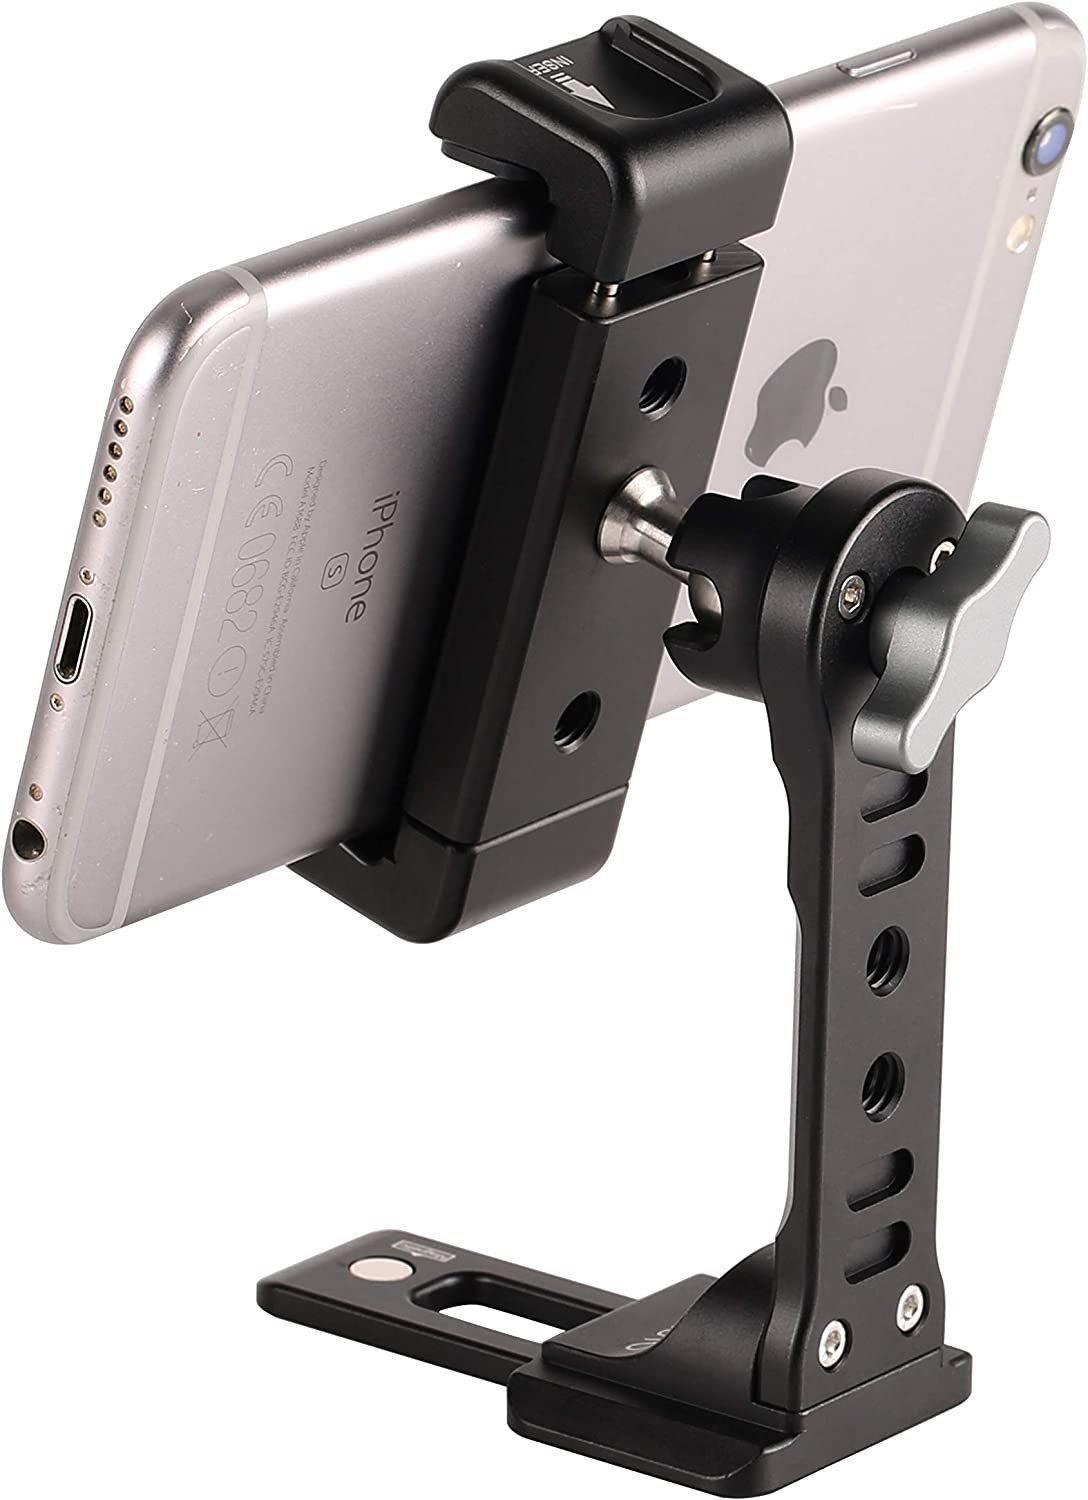 Metal Phone Tripod Mount with Cold Shoe,Woohoto 360 Rotation Phone Tripod Holder Adapter,Desktop Cell Phone Stand, Compatible with iPhone Sumsung Smartphone,Cell Phone Clamp,Video Rig Mount